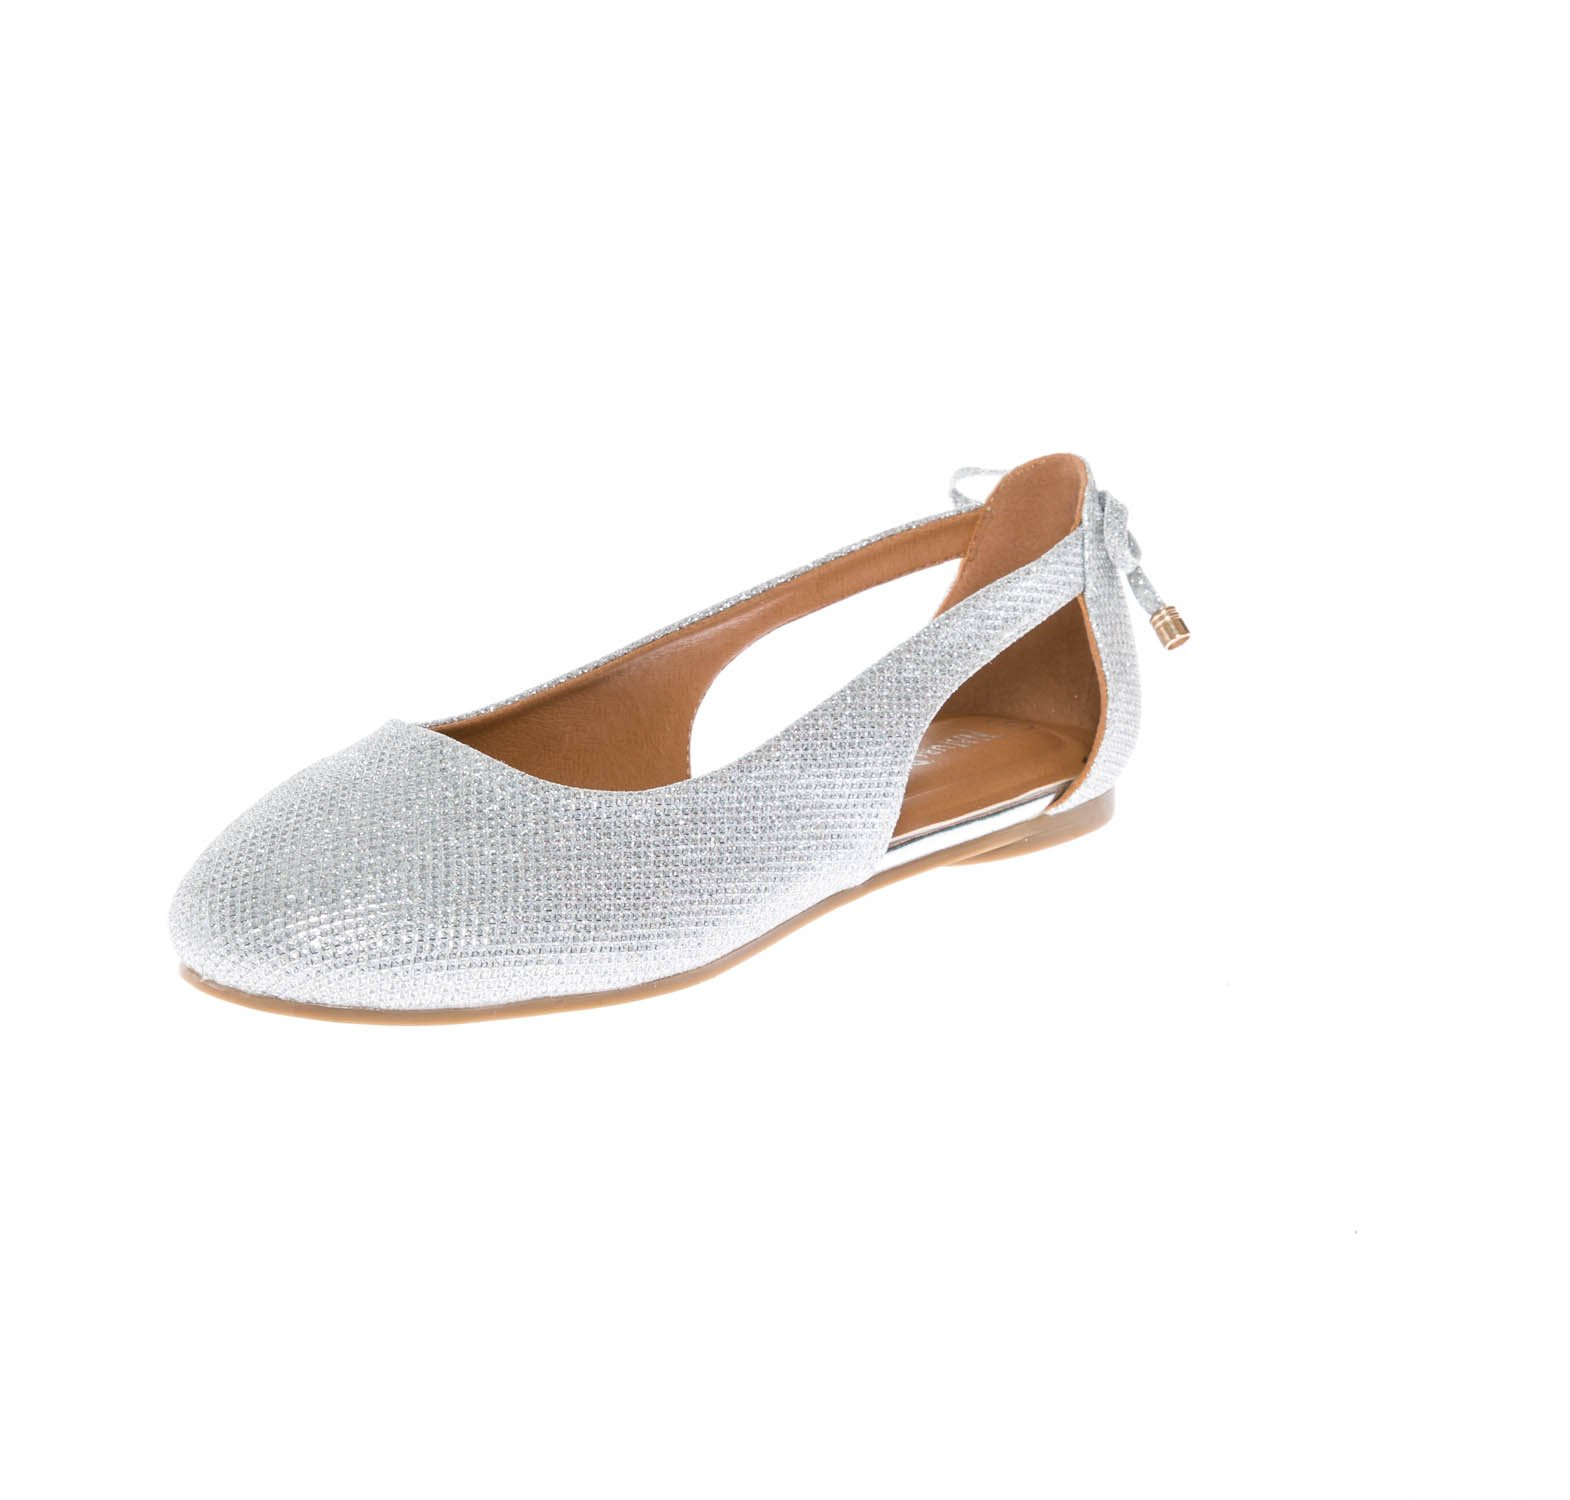 CALICO KIKI NOELLE-CK01 Women's Soft Suede Slip On Comfort Flat Shoes (8 US Silver GL)